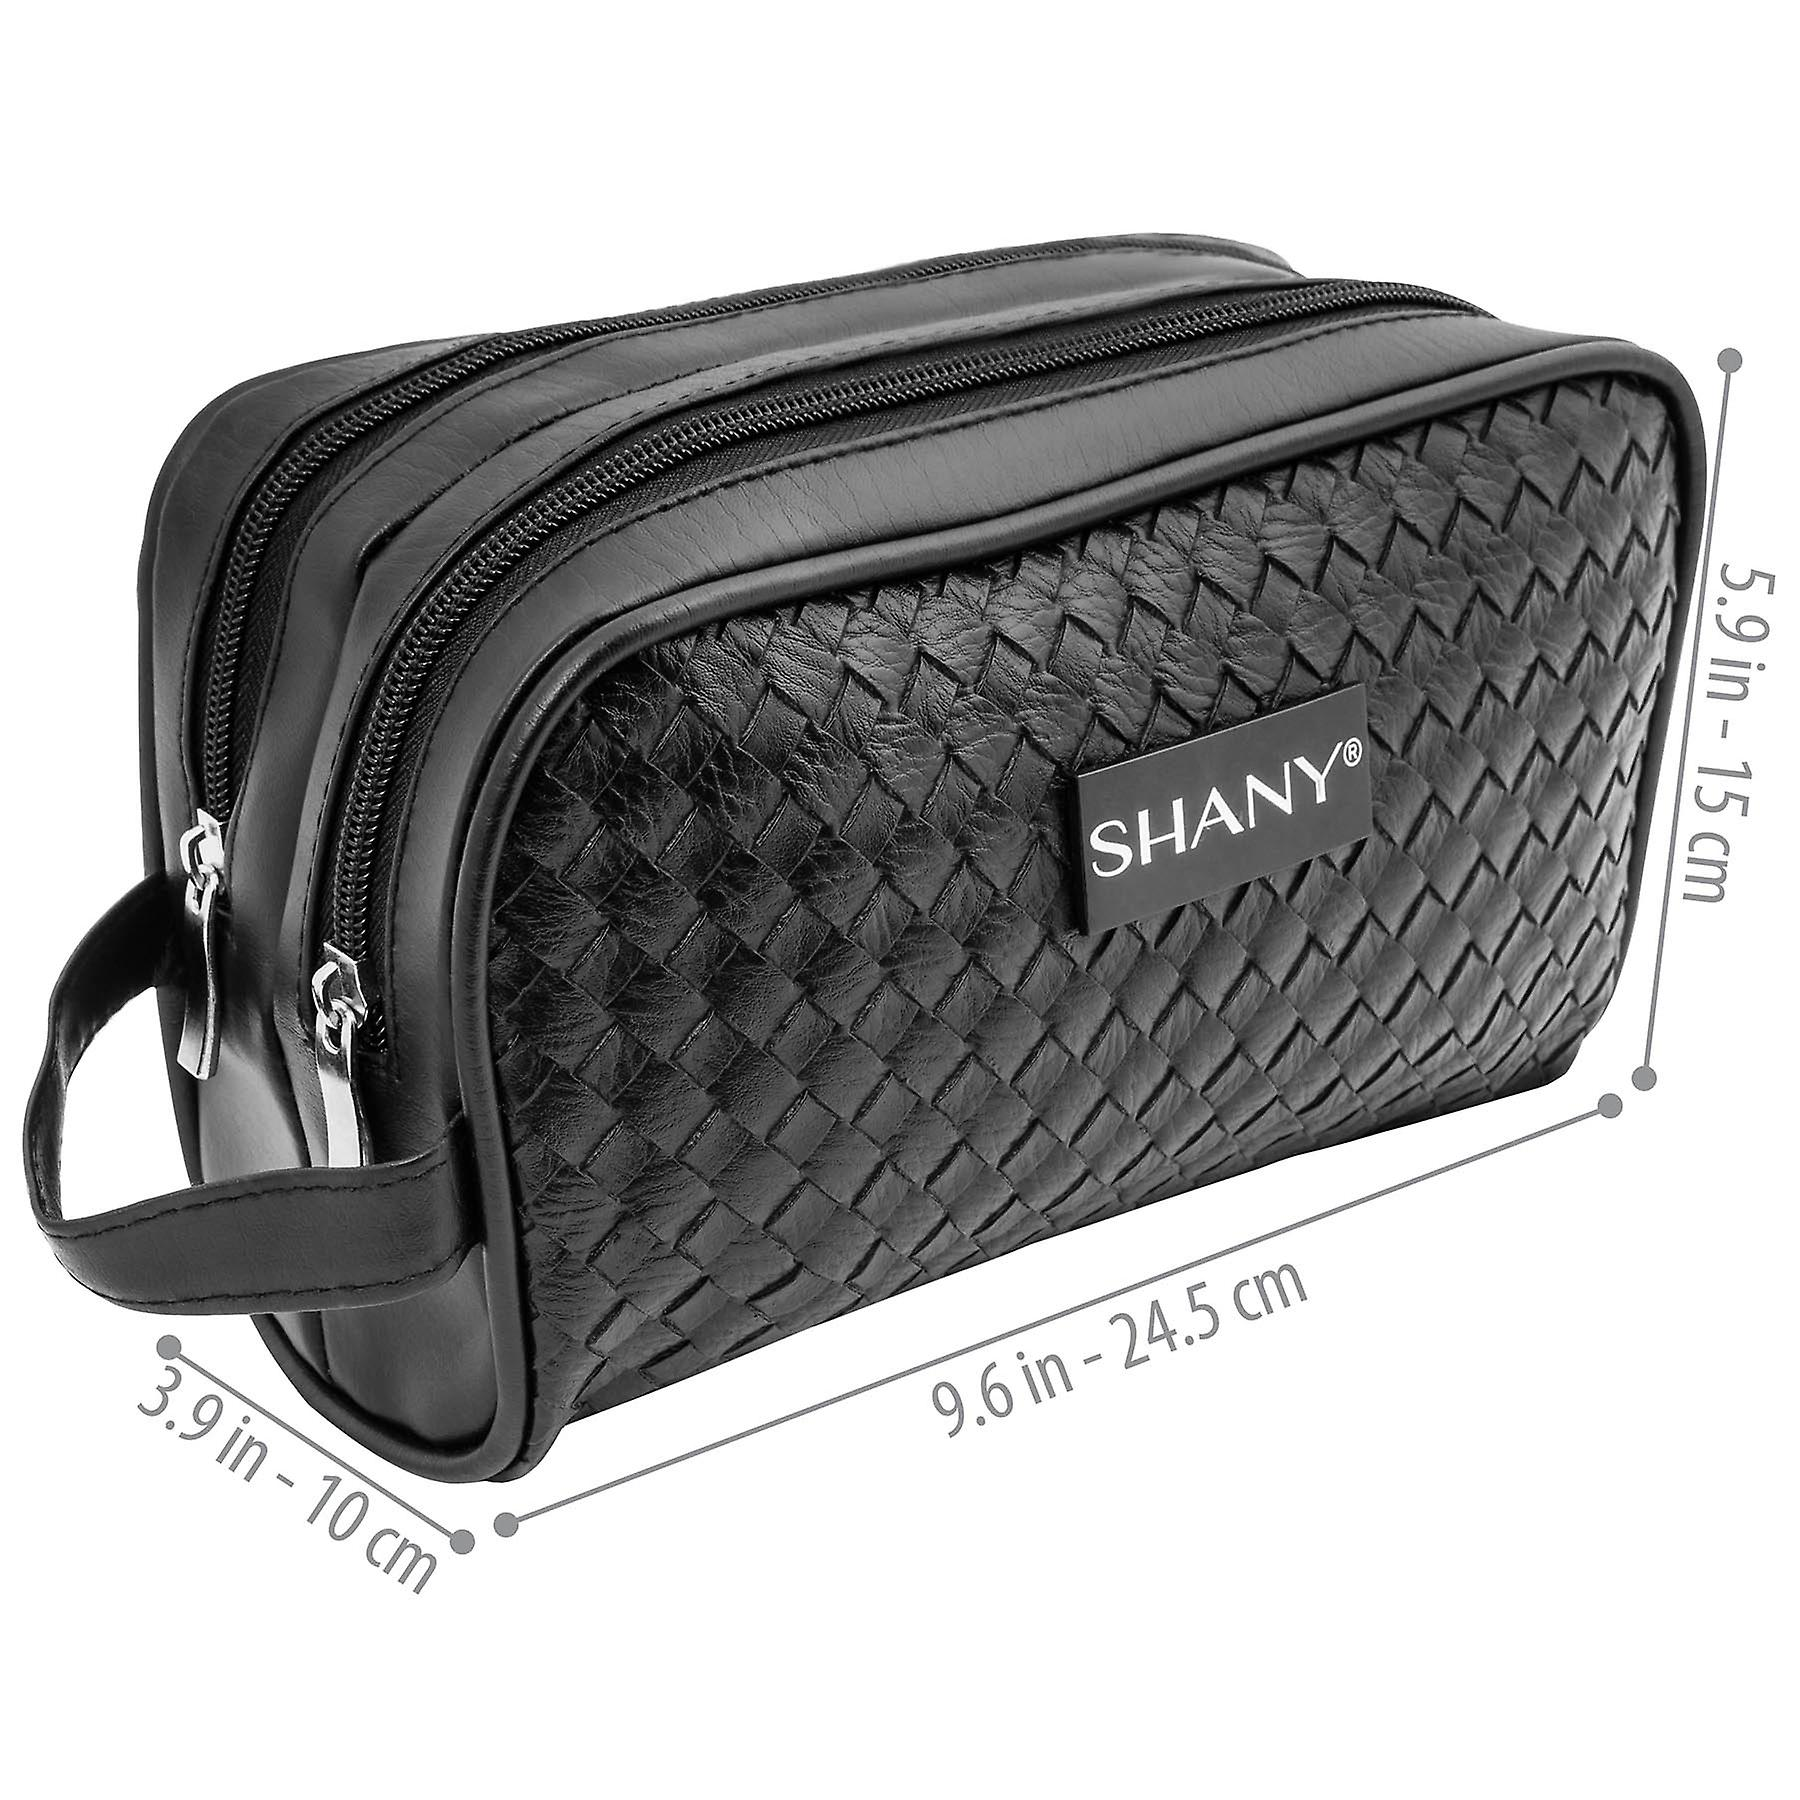 SHANY Woven Double-Pocket Toiletry Handbag – Faux Leather Portable Traveling Organizer with Two Zippered Compartments – Black